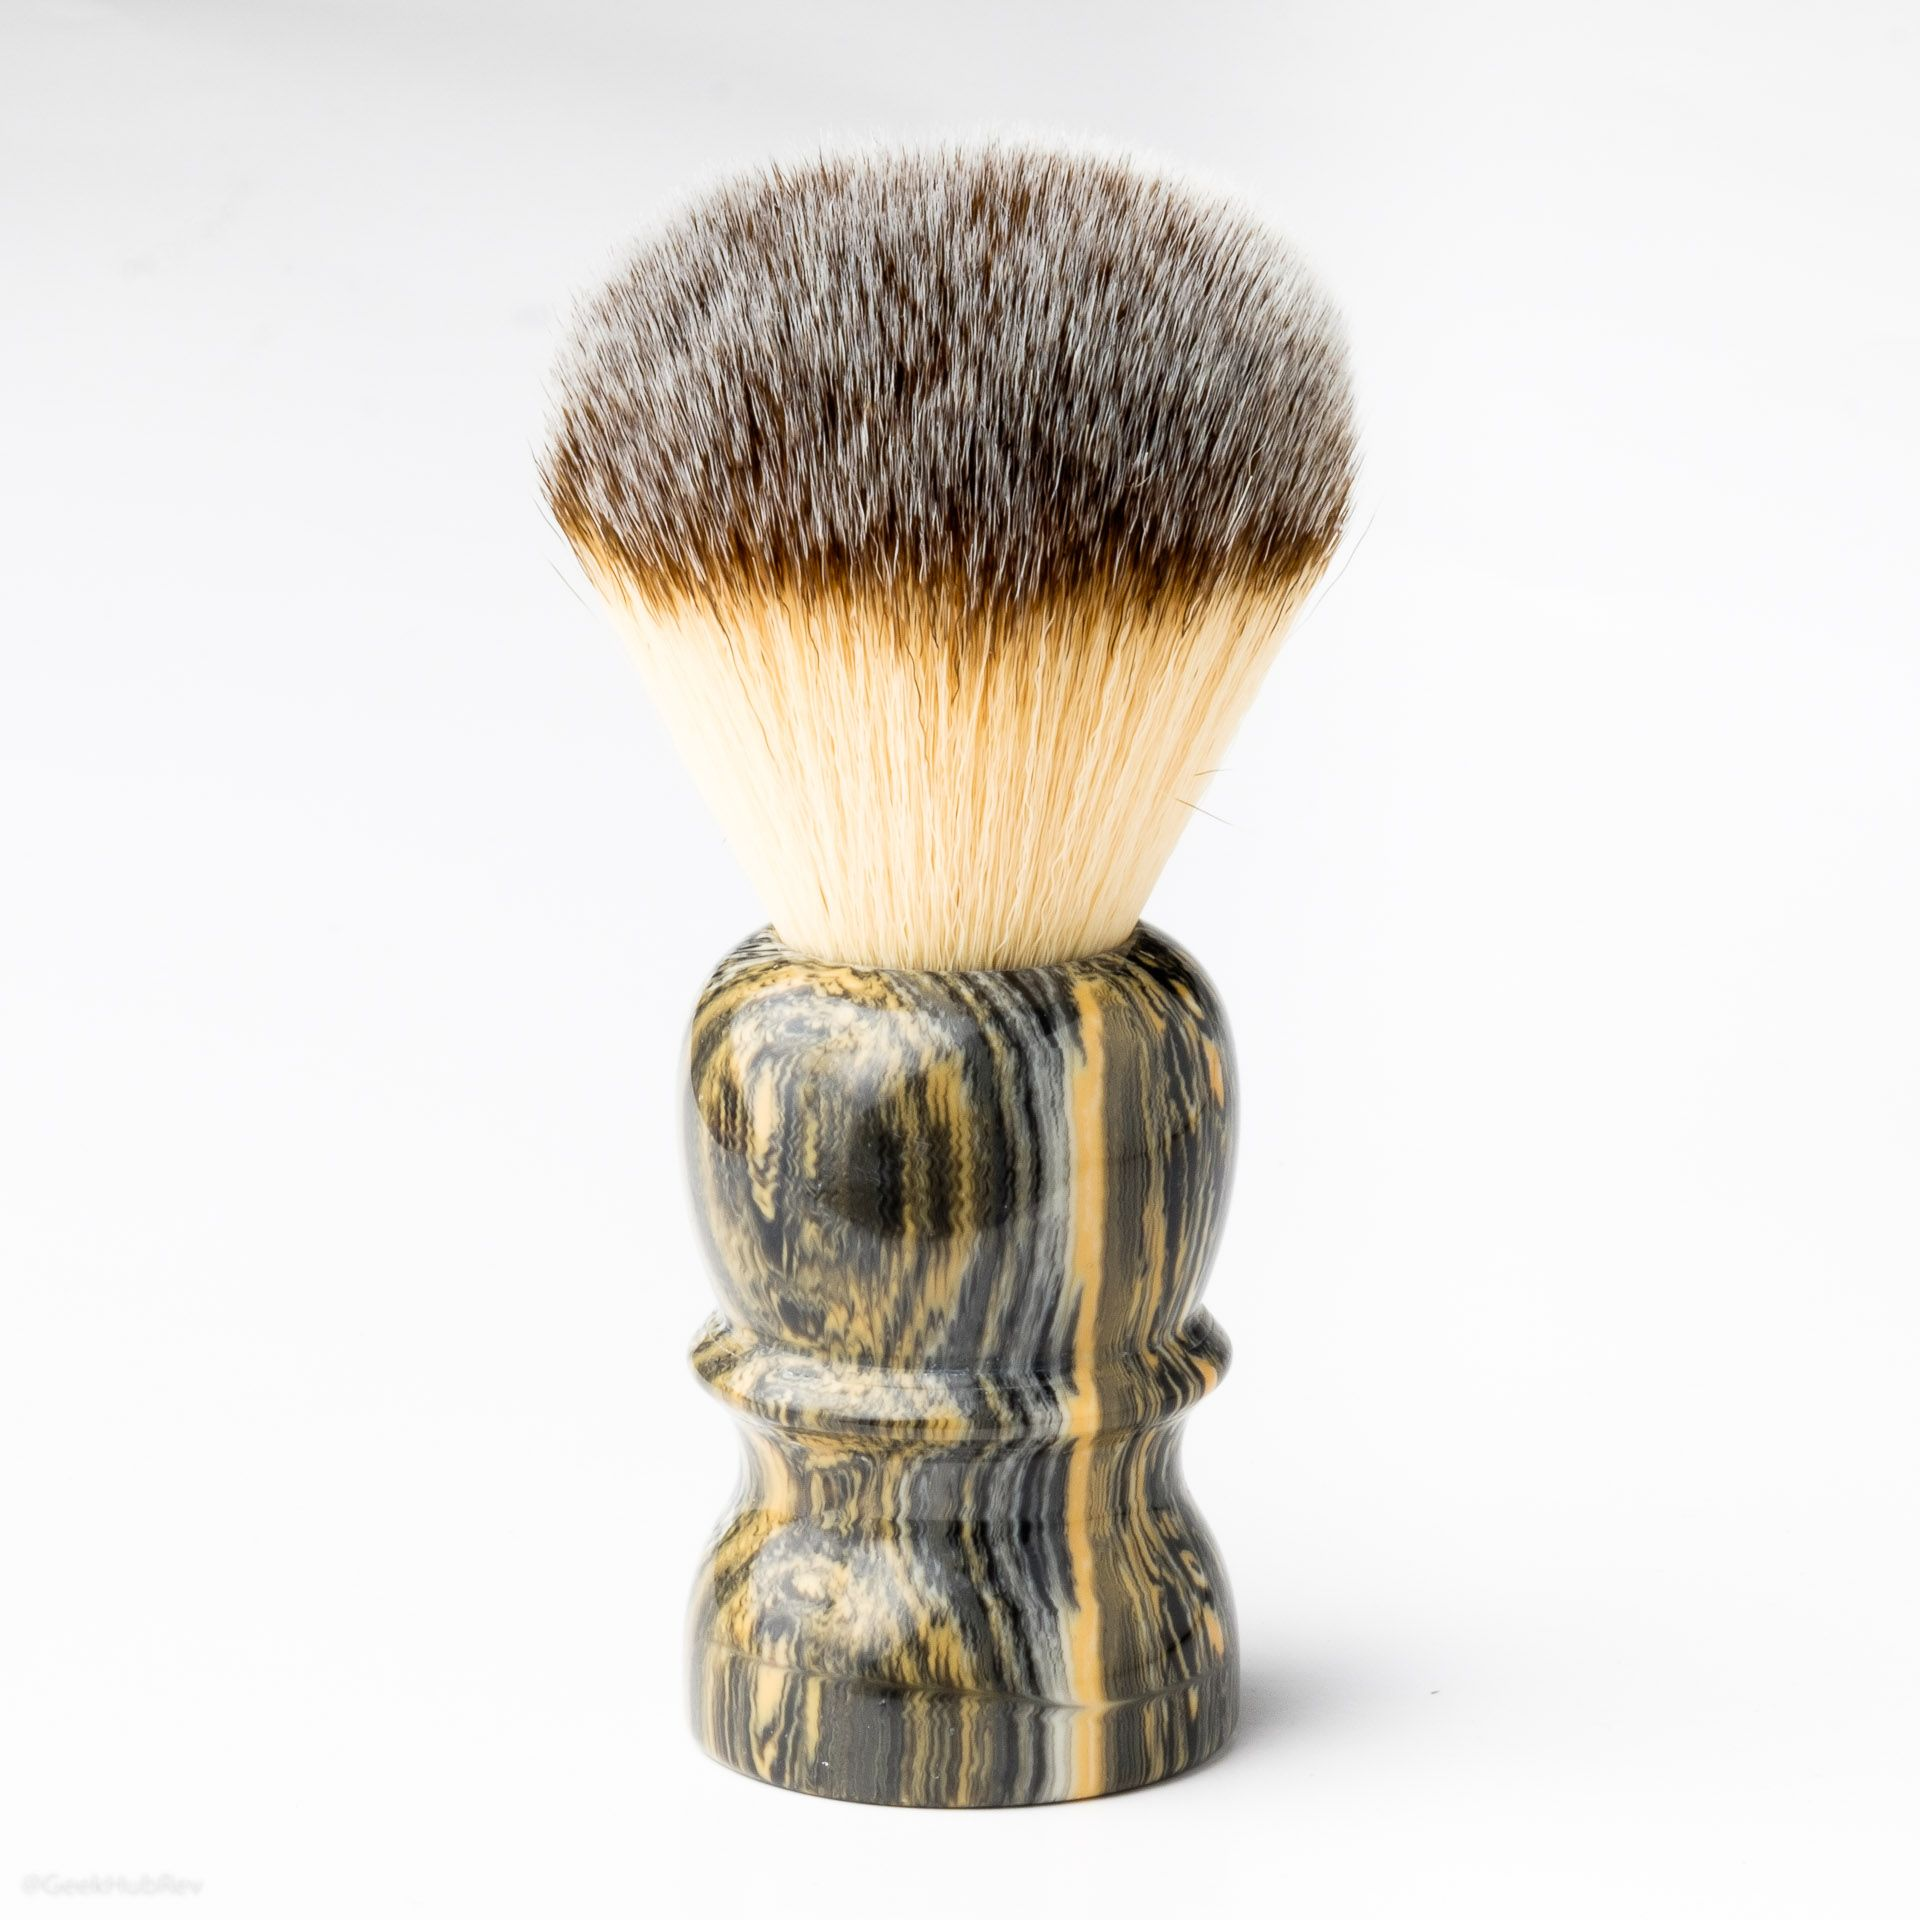 Pędzel do golenia Maggard Razors SY-26 26mm Synthetic Shaving Brush, Granite Handle